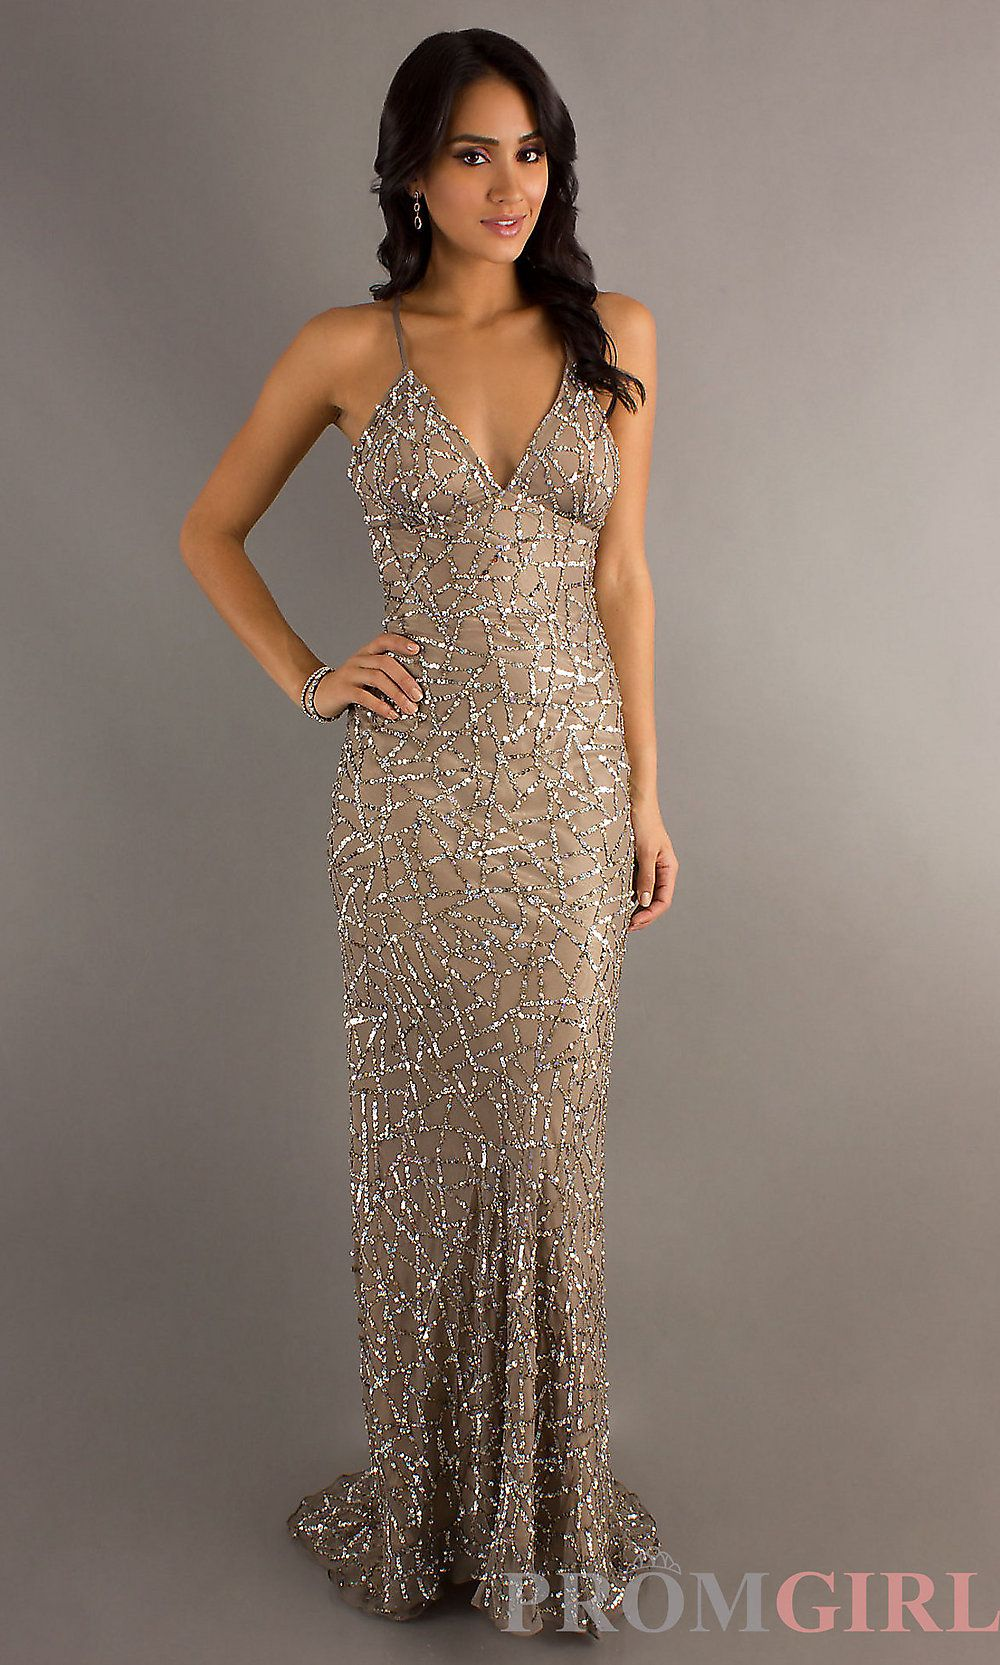 Backless Sequin Gowns Scala Open Back Prom Dresses- PromGirl   Senior Year   Pinterest ...